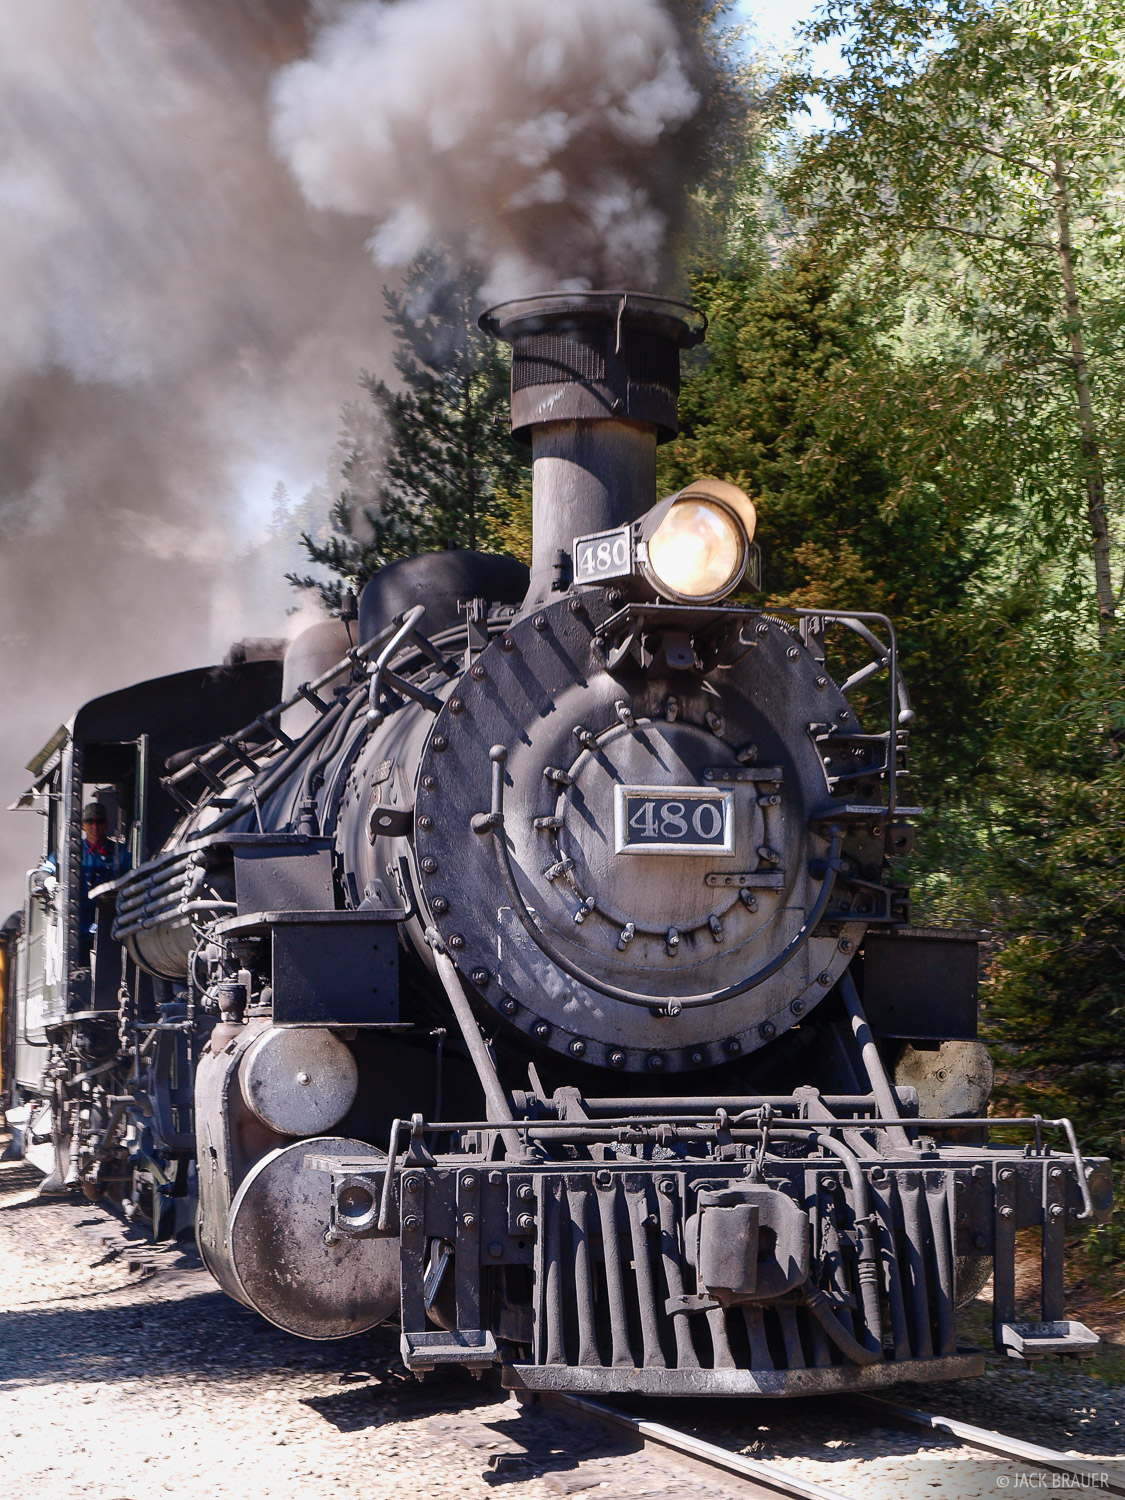 The Durango & Silverton Narrow Gauge Railroad is my ride back to civilization.